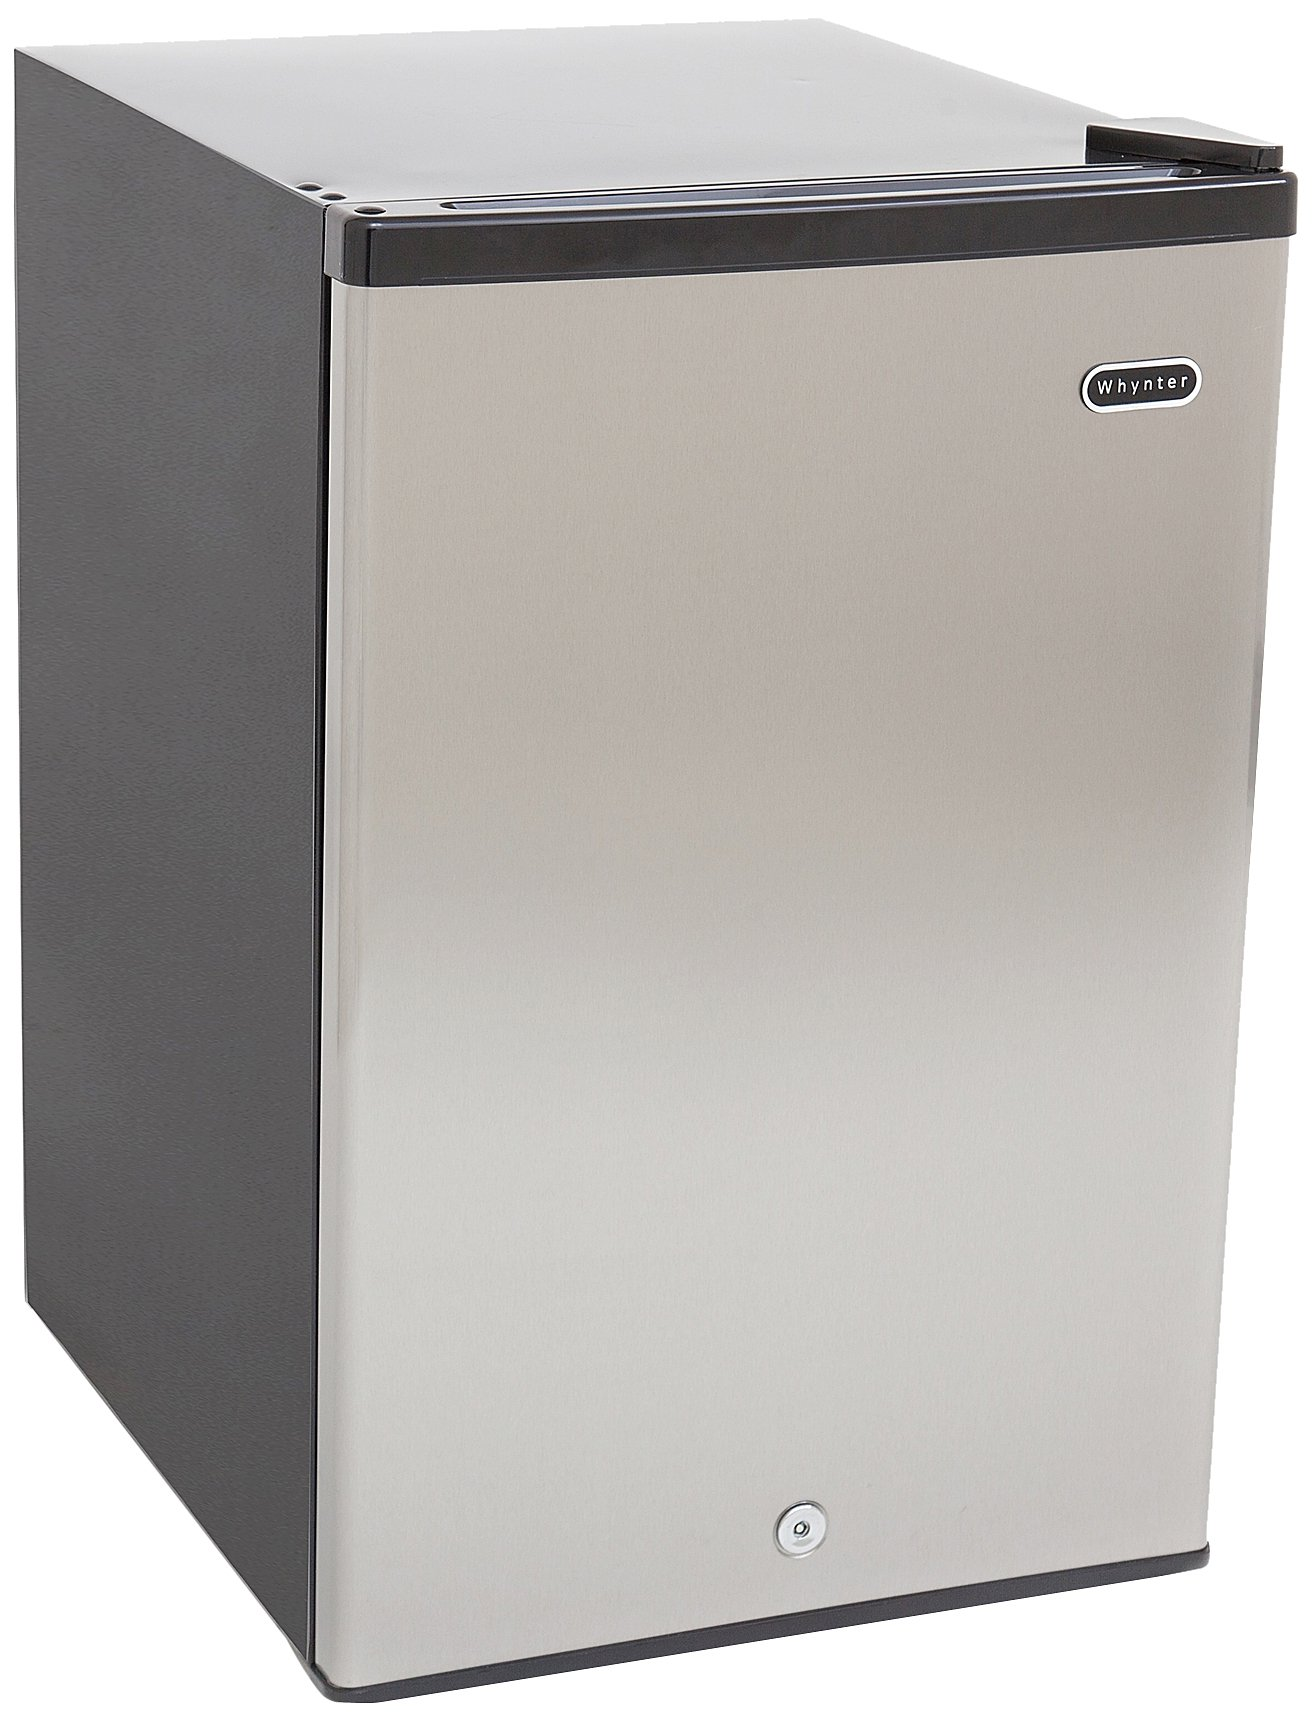 Whynter CUF-210SS Energy Star Upright Freezer, 2.1 Cubic Feet by Whynter